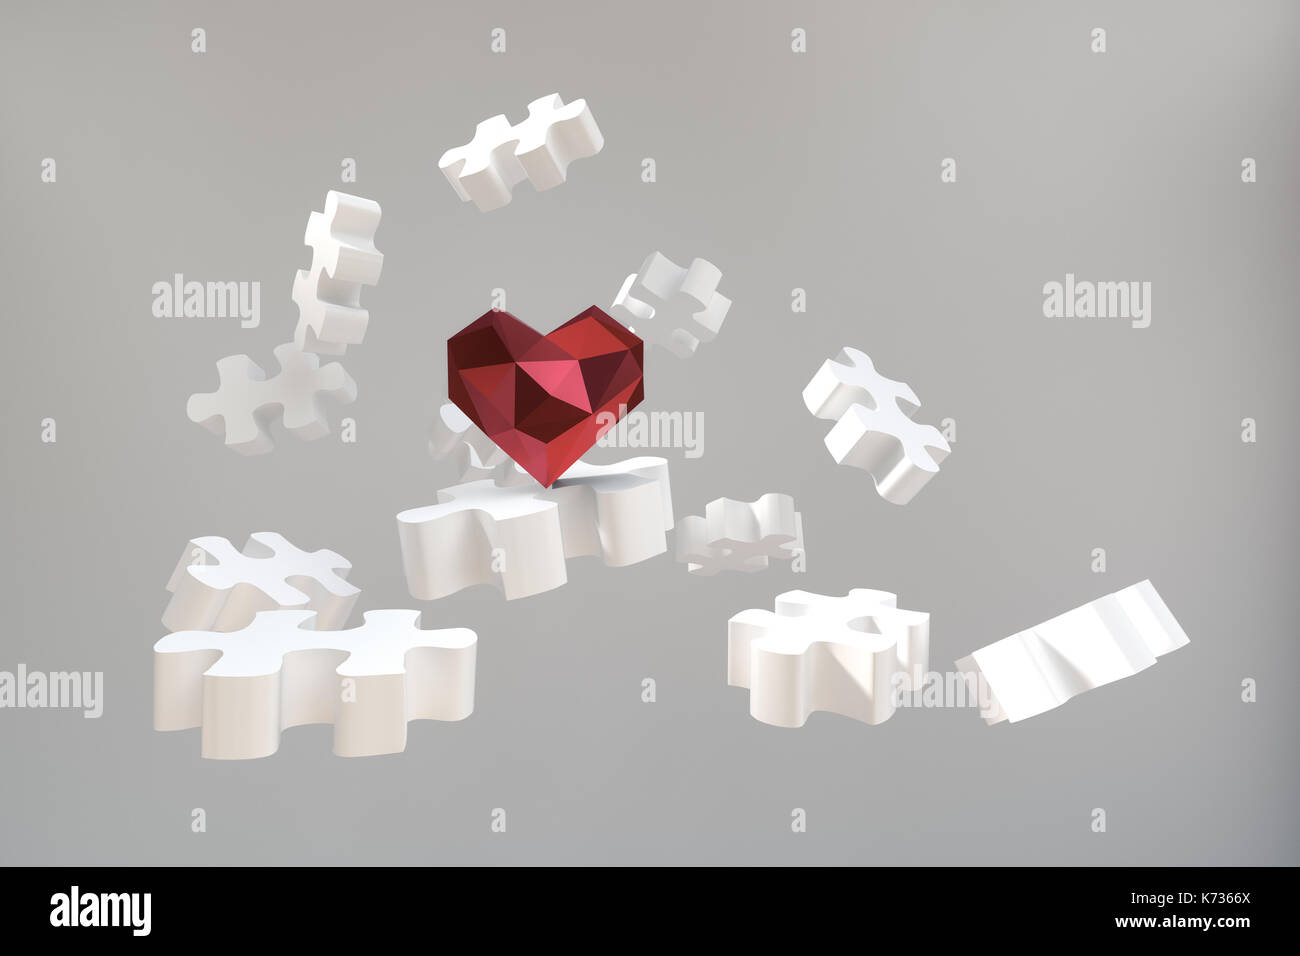 3d rendering of low poly heart shape on flying puzzle blocks